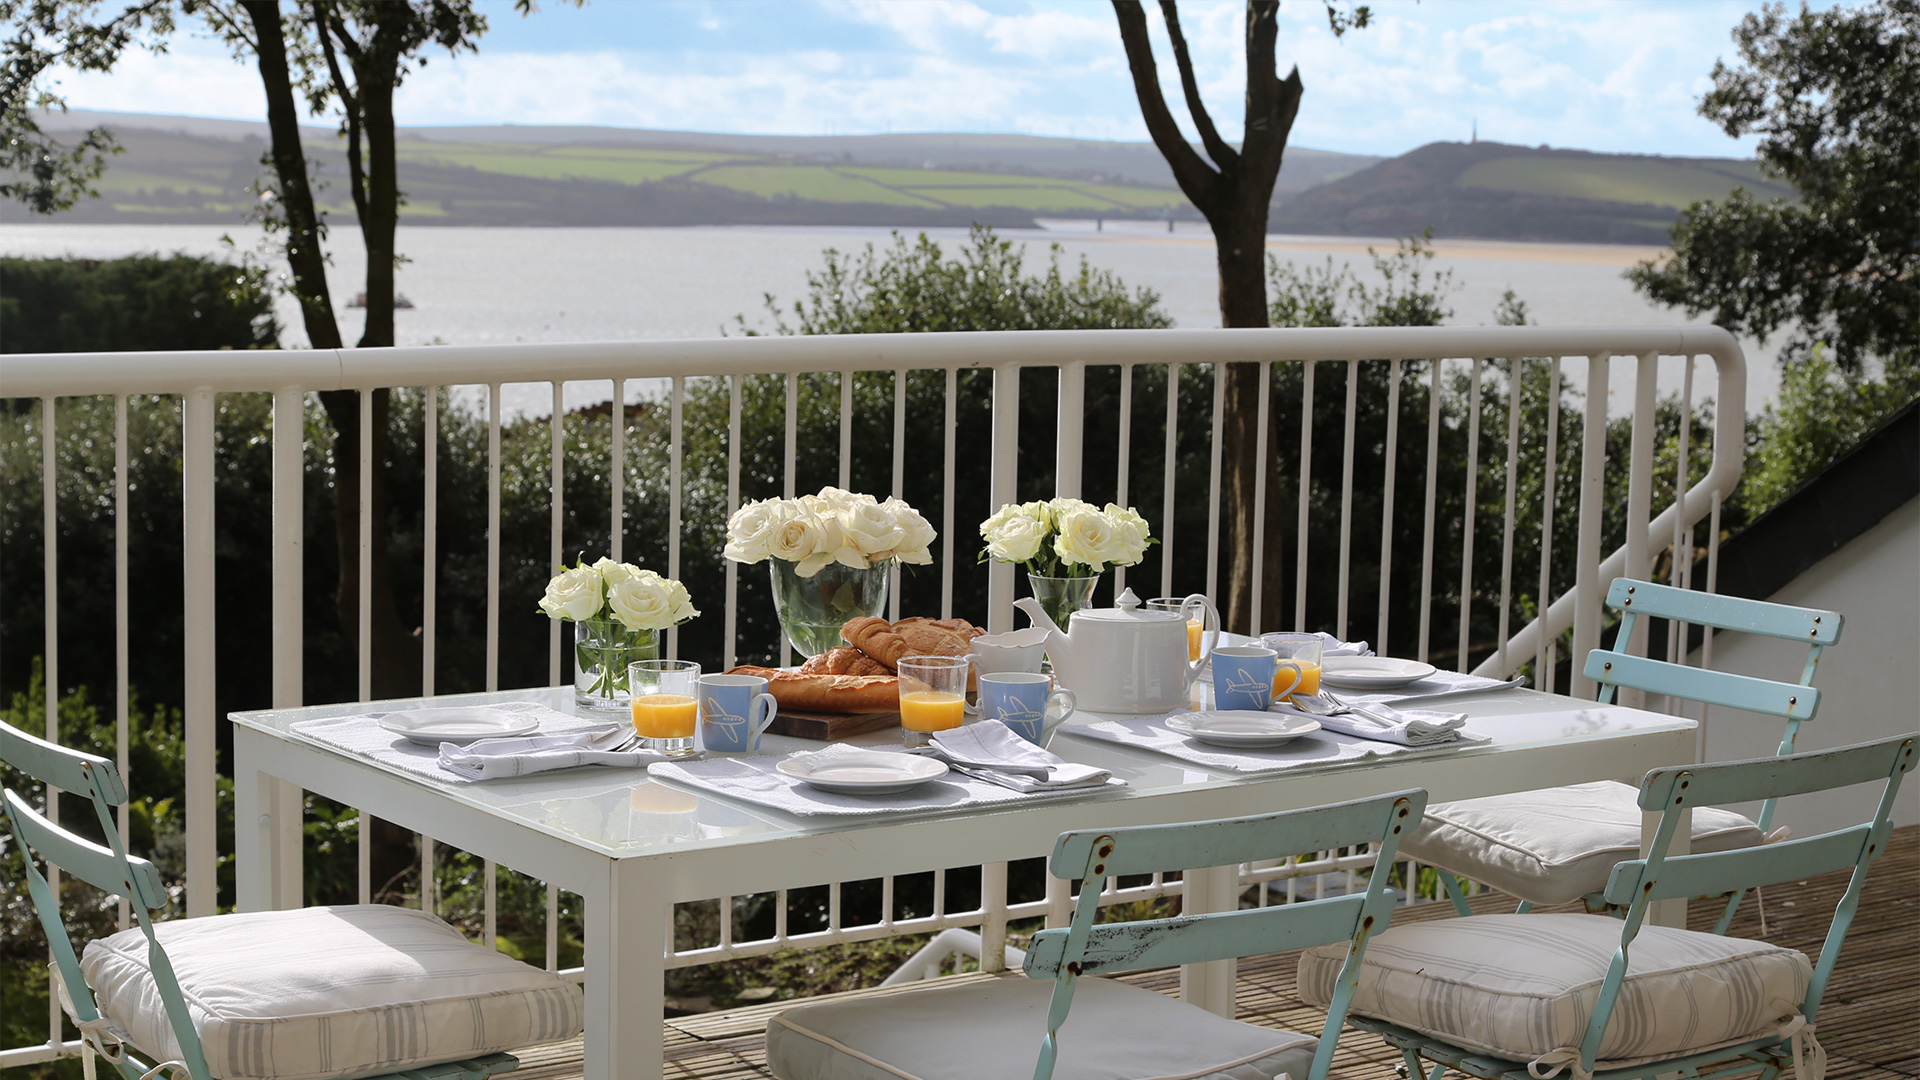 Tomhara - Breakfast on the sun deck